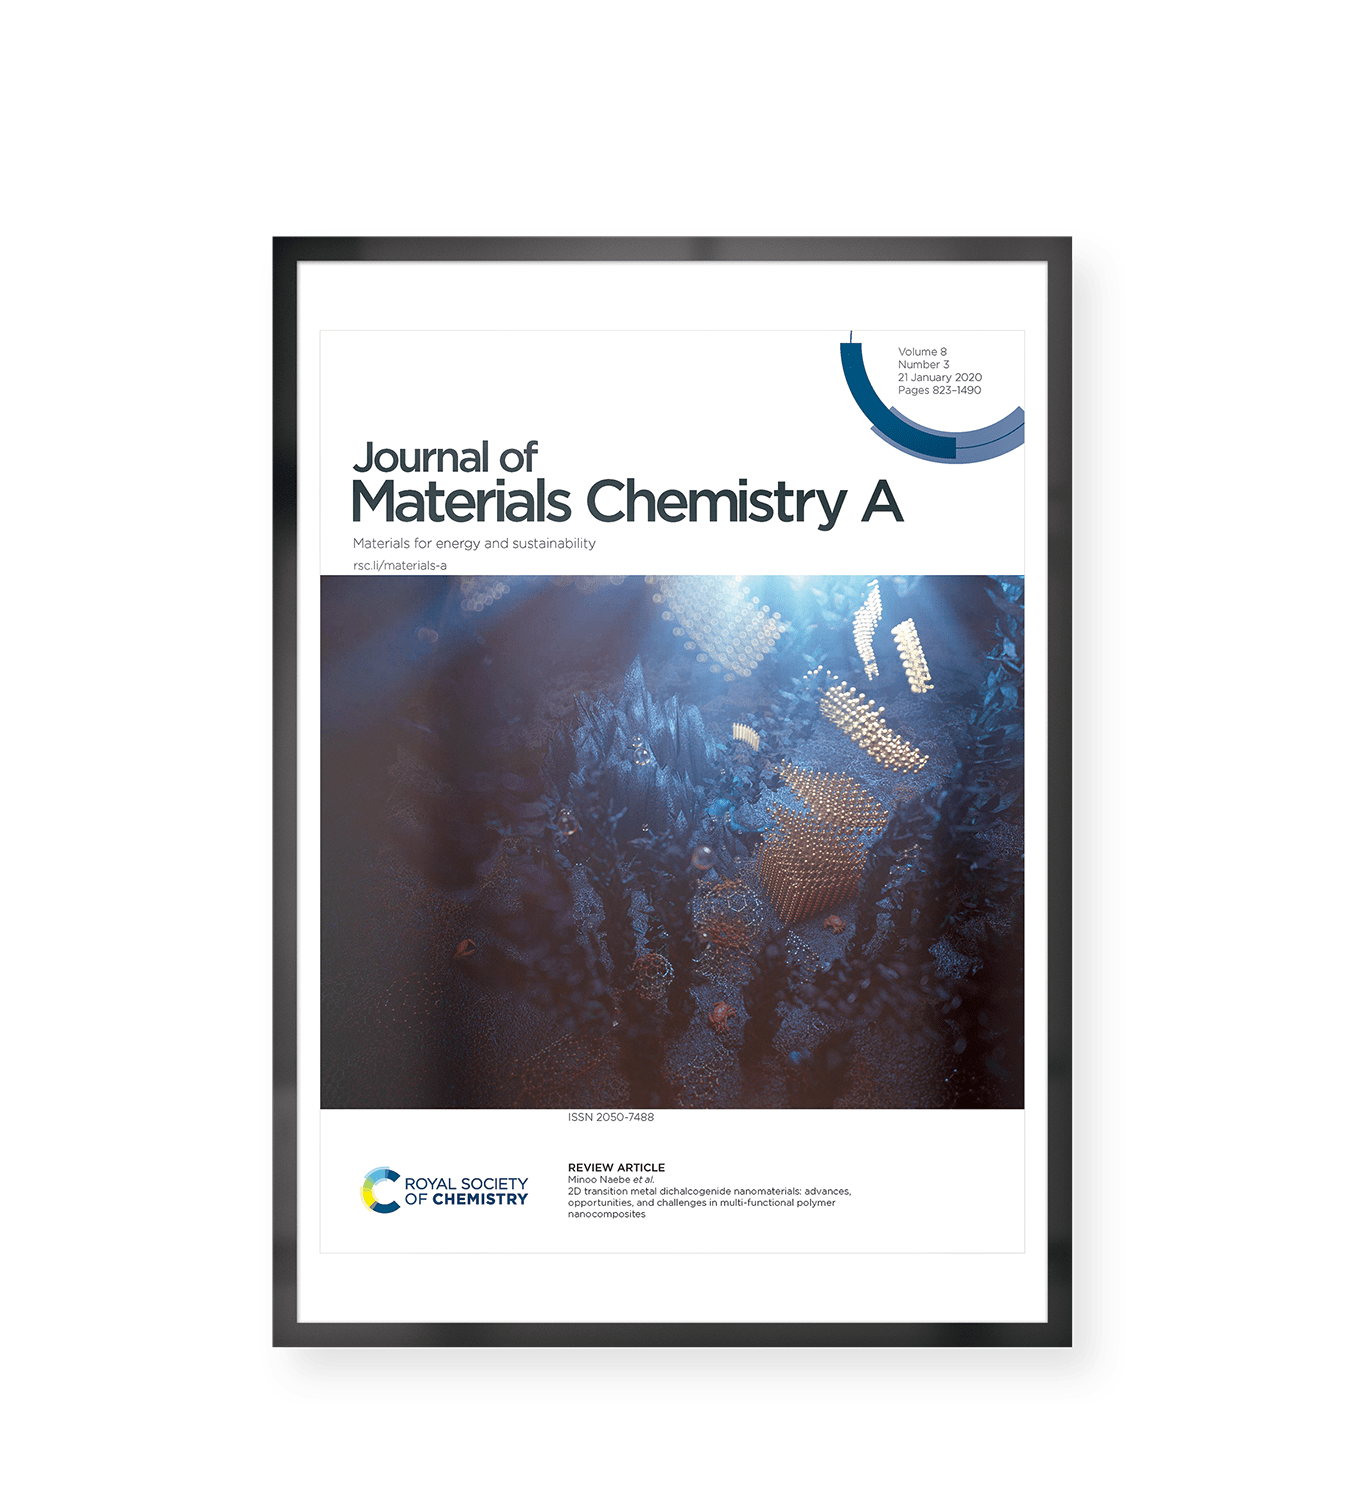 Cover Image for RSC Journal of Materials Chemistry A representing the research of Dr. Mojtaba Ahmadi et al: